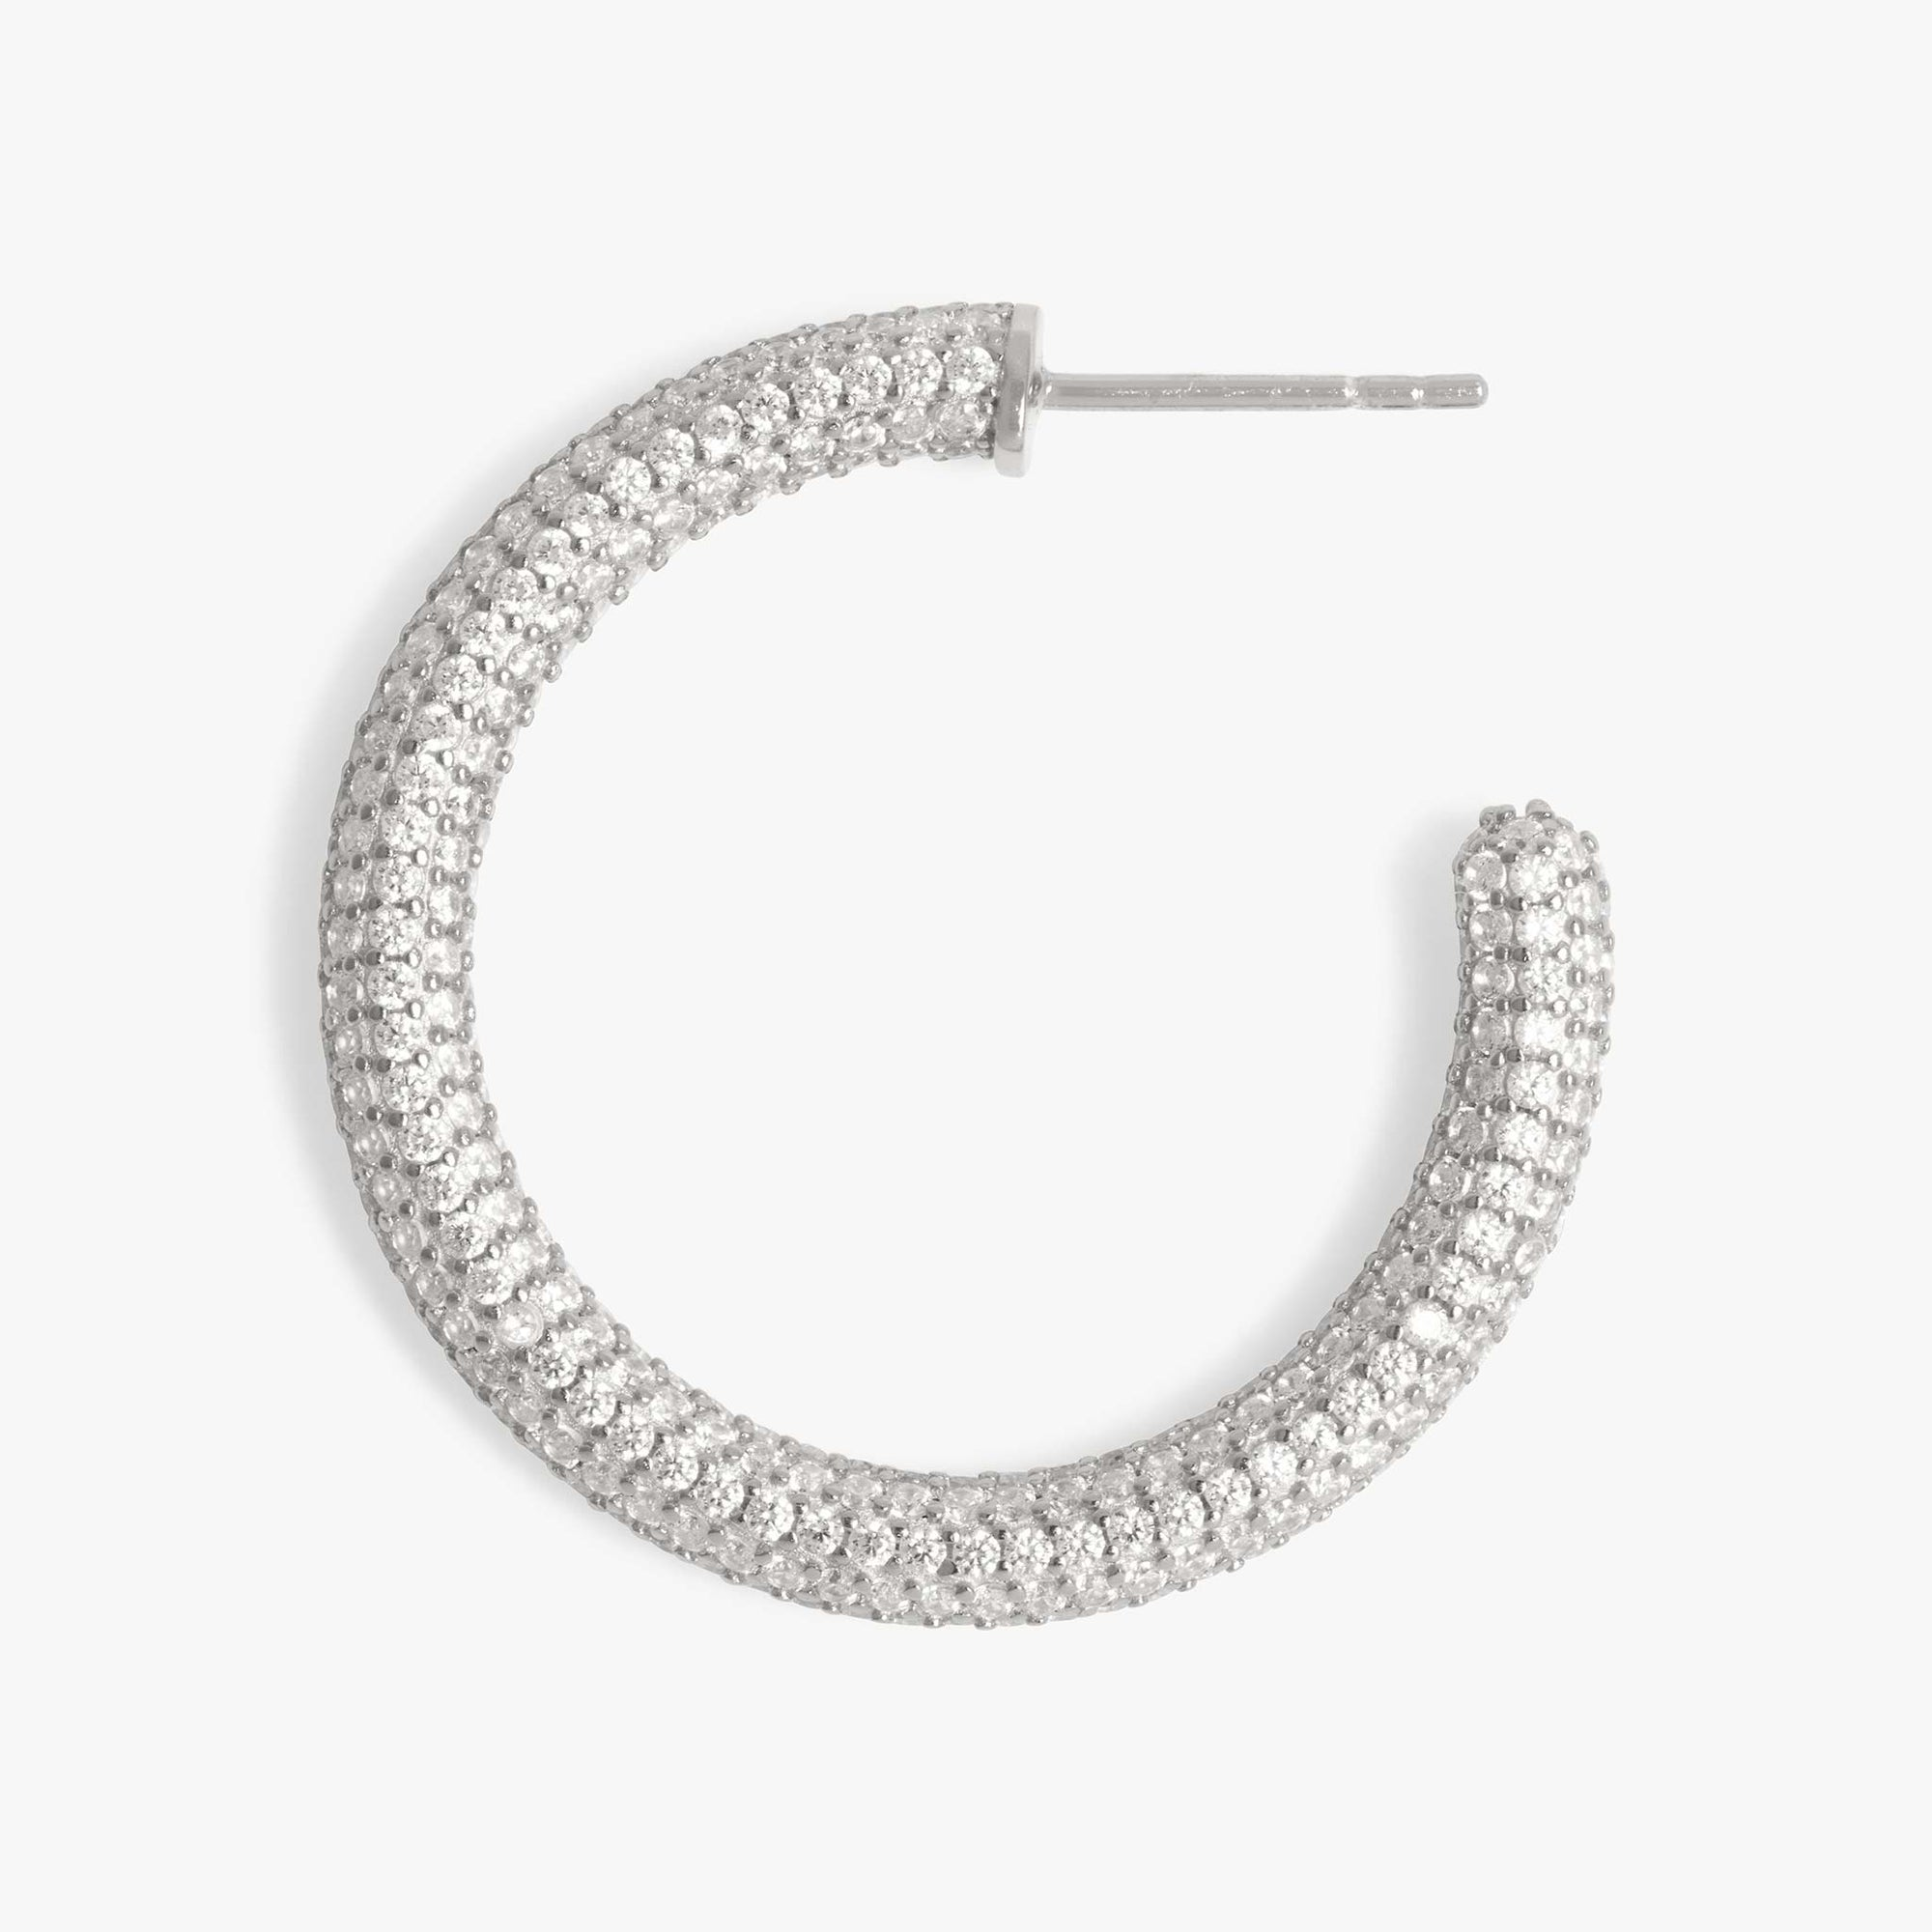 Tube-like hollow hoop with covered in CZs. color:silver